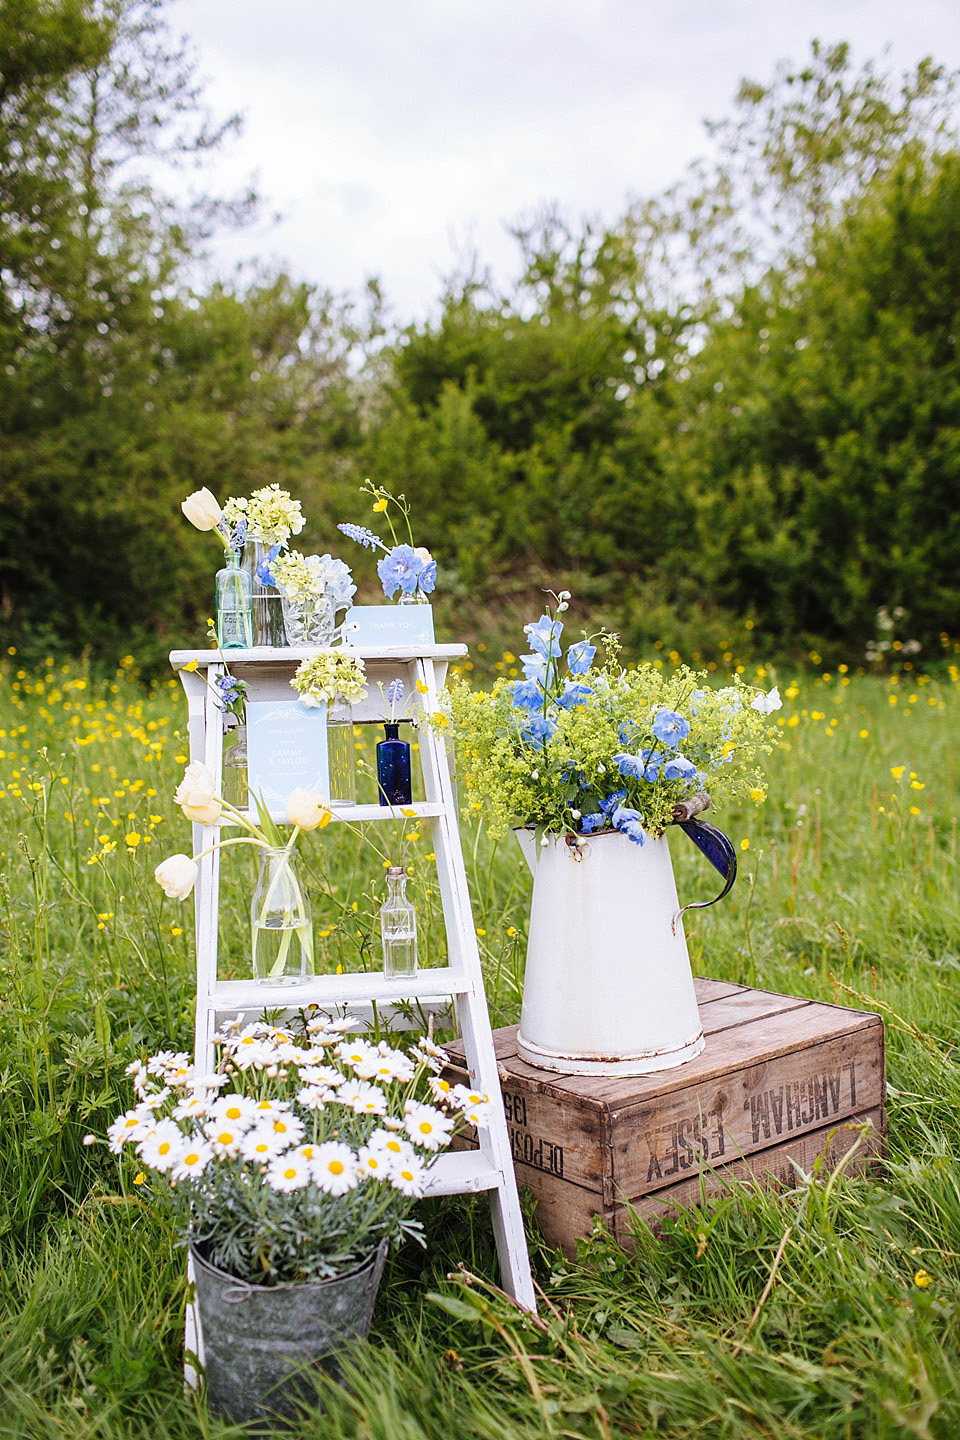 Late Spring/Early Summer Rustic Outdoor Wedding Inspiration in Shades of Yellow and Blue